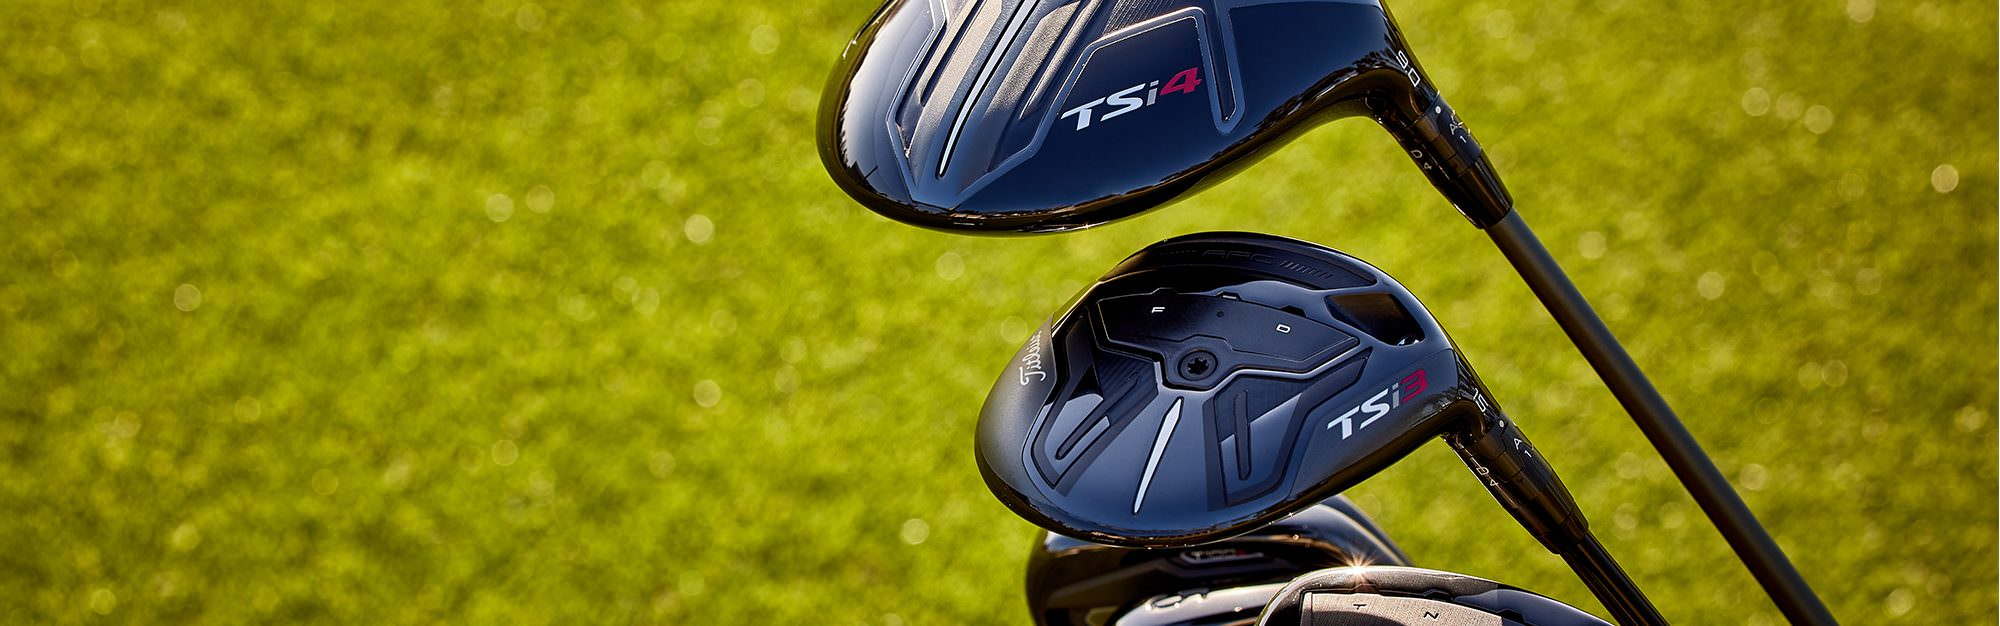 Titleist TSi fairway woods review: We tested them all